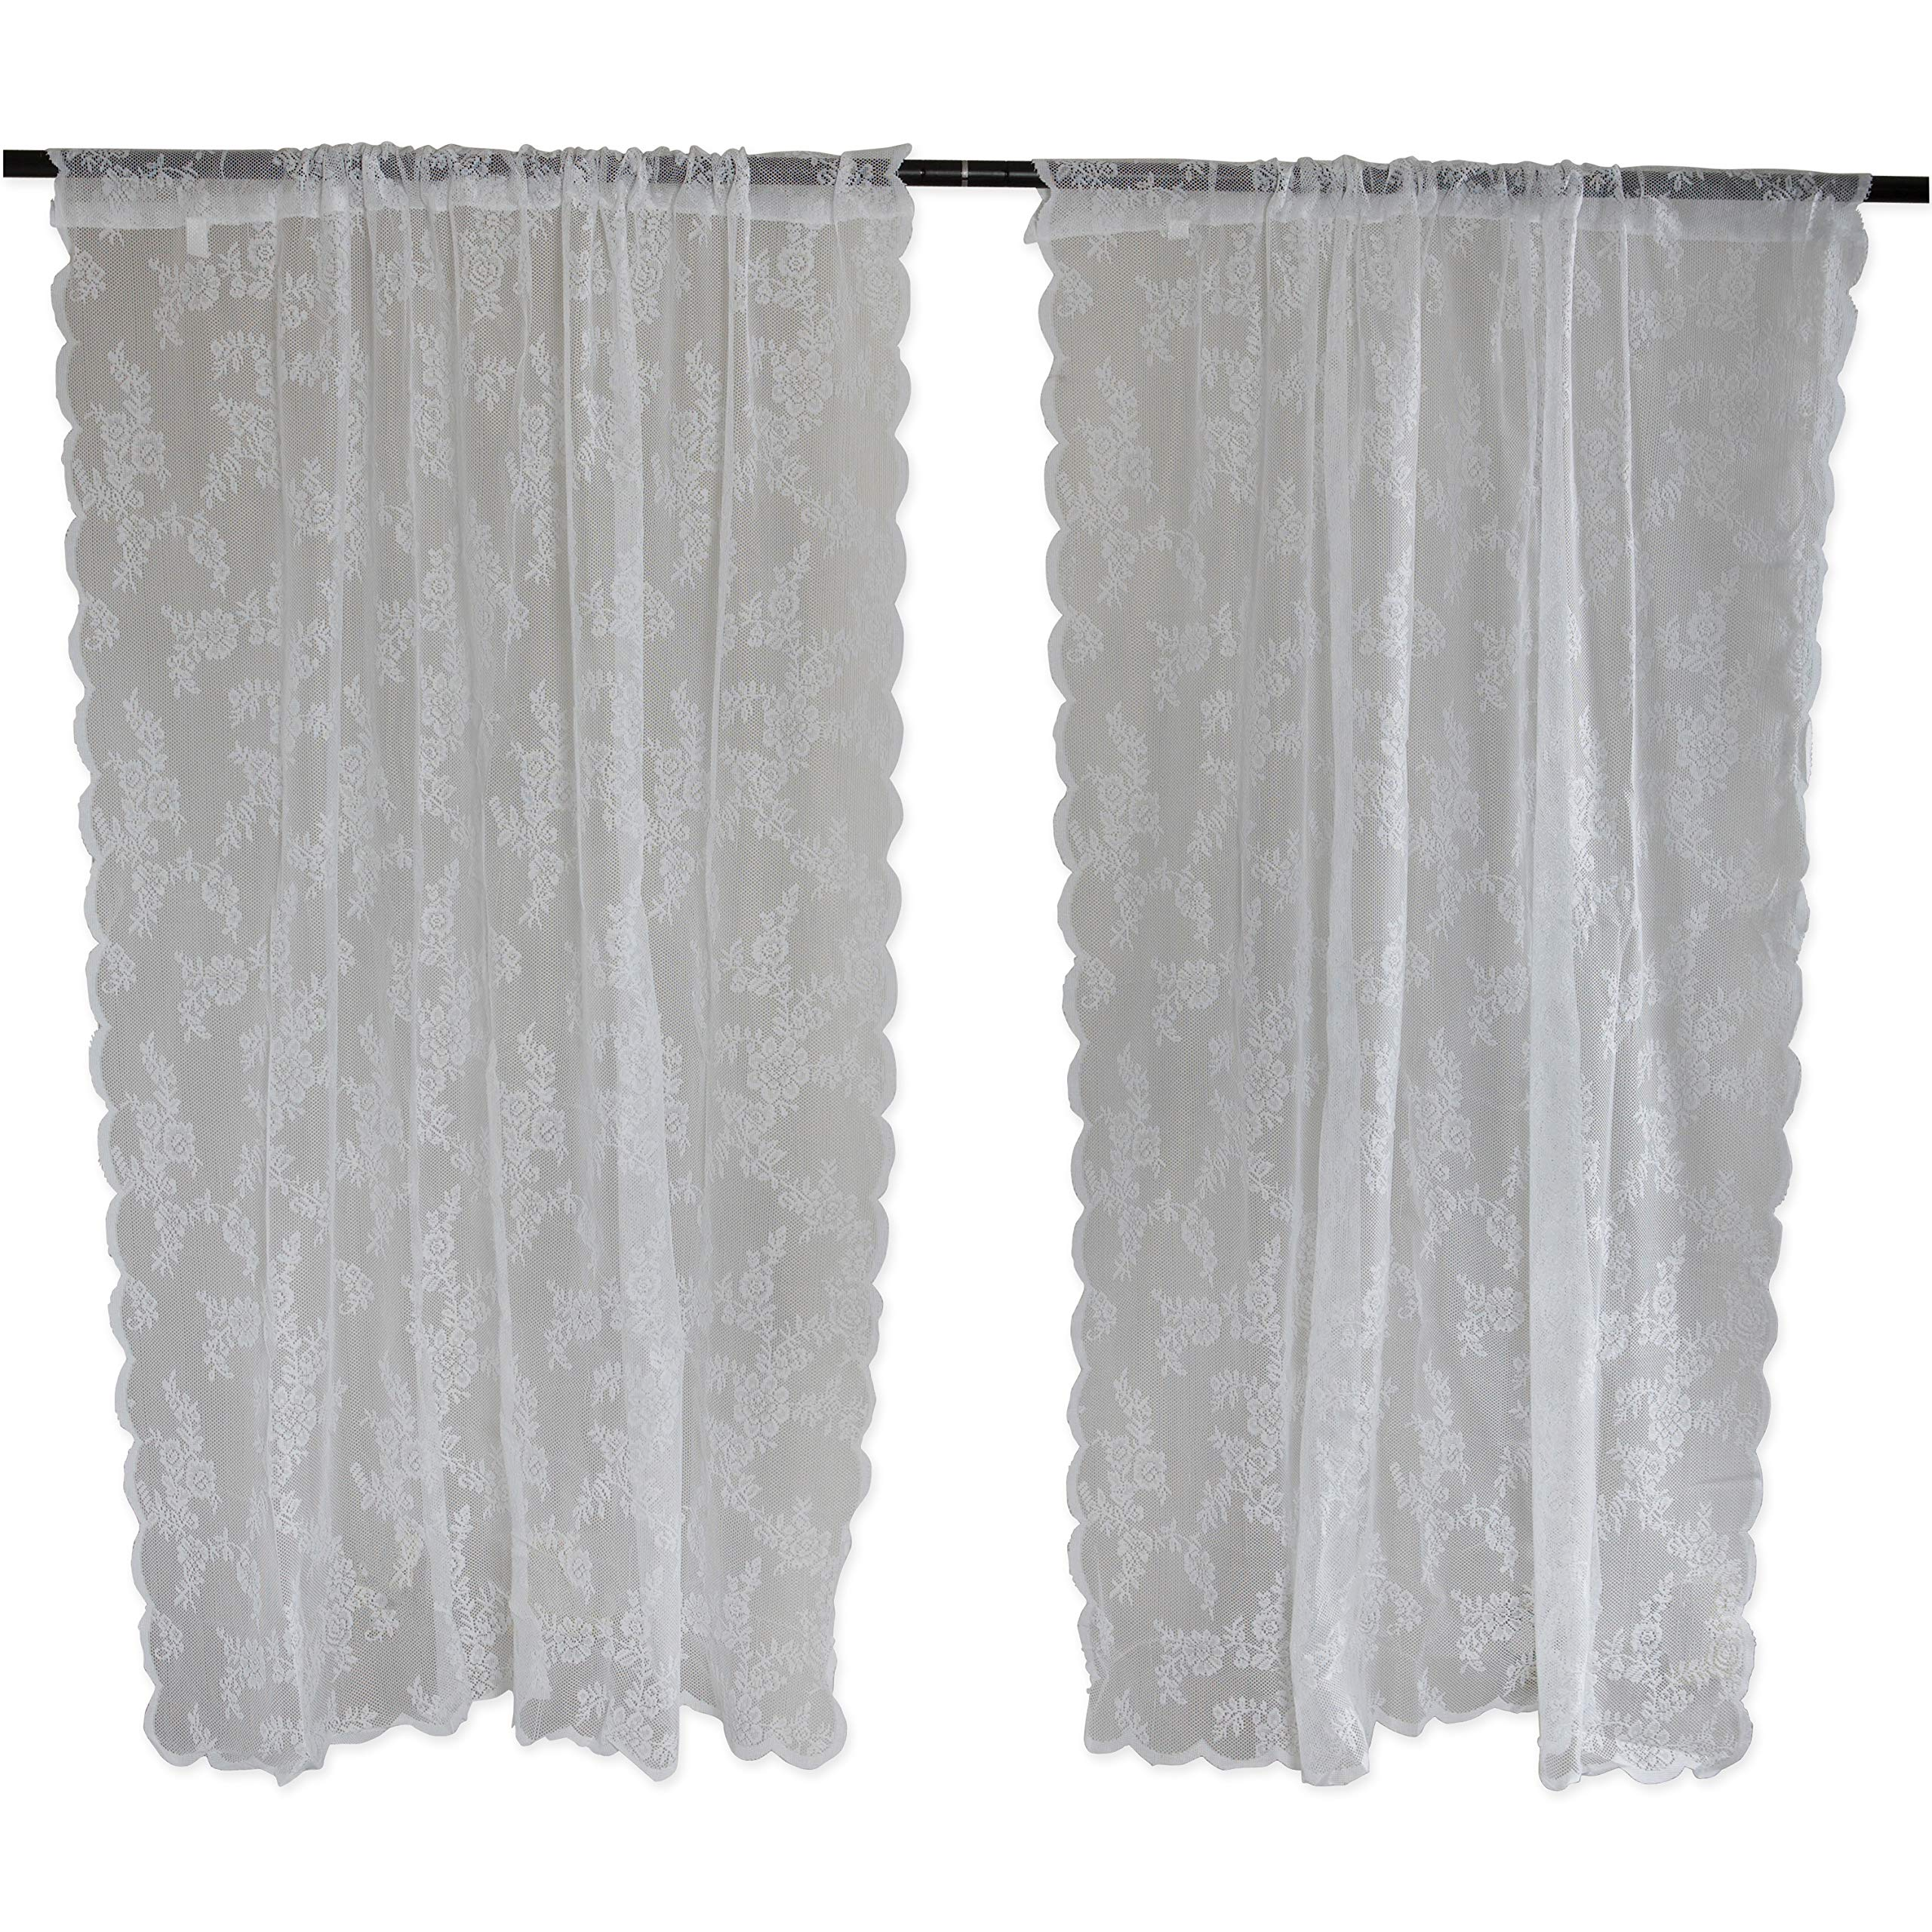 Country Kitchen Curtains Amazon Com: Country Lace Curtains: Amazon.com